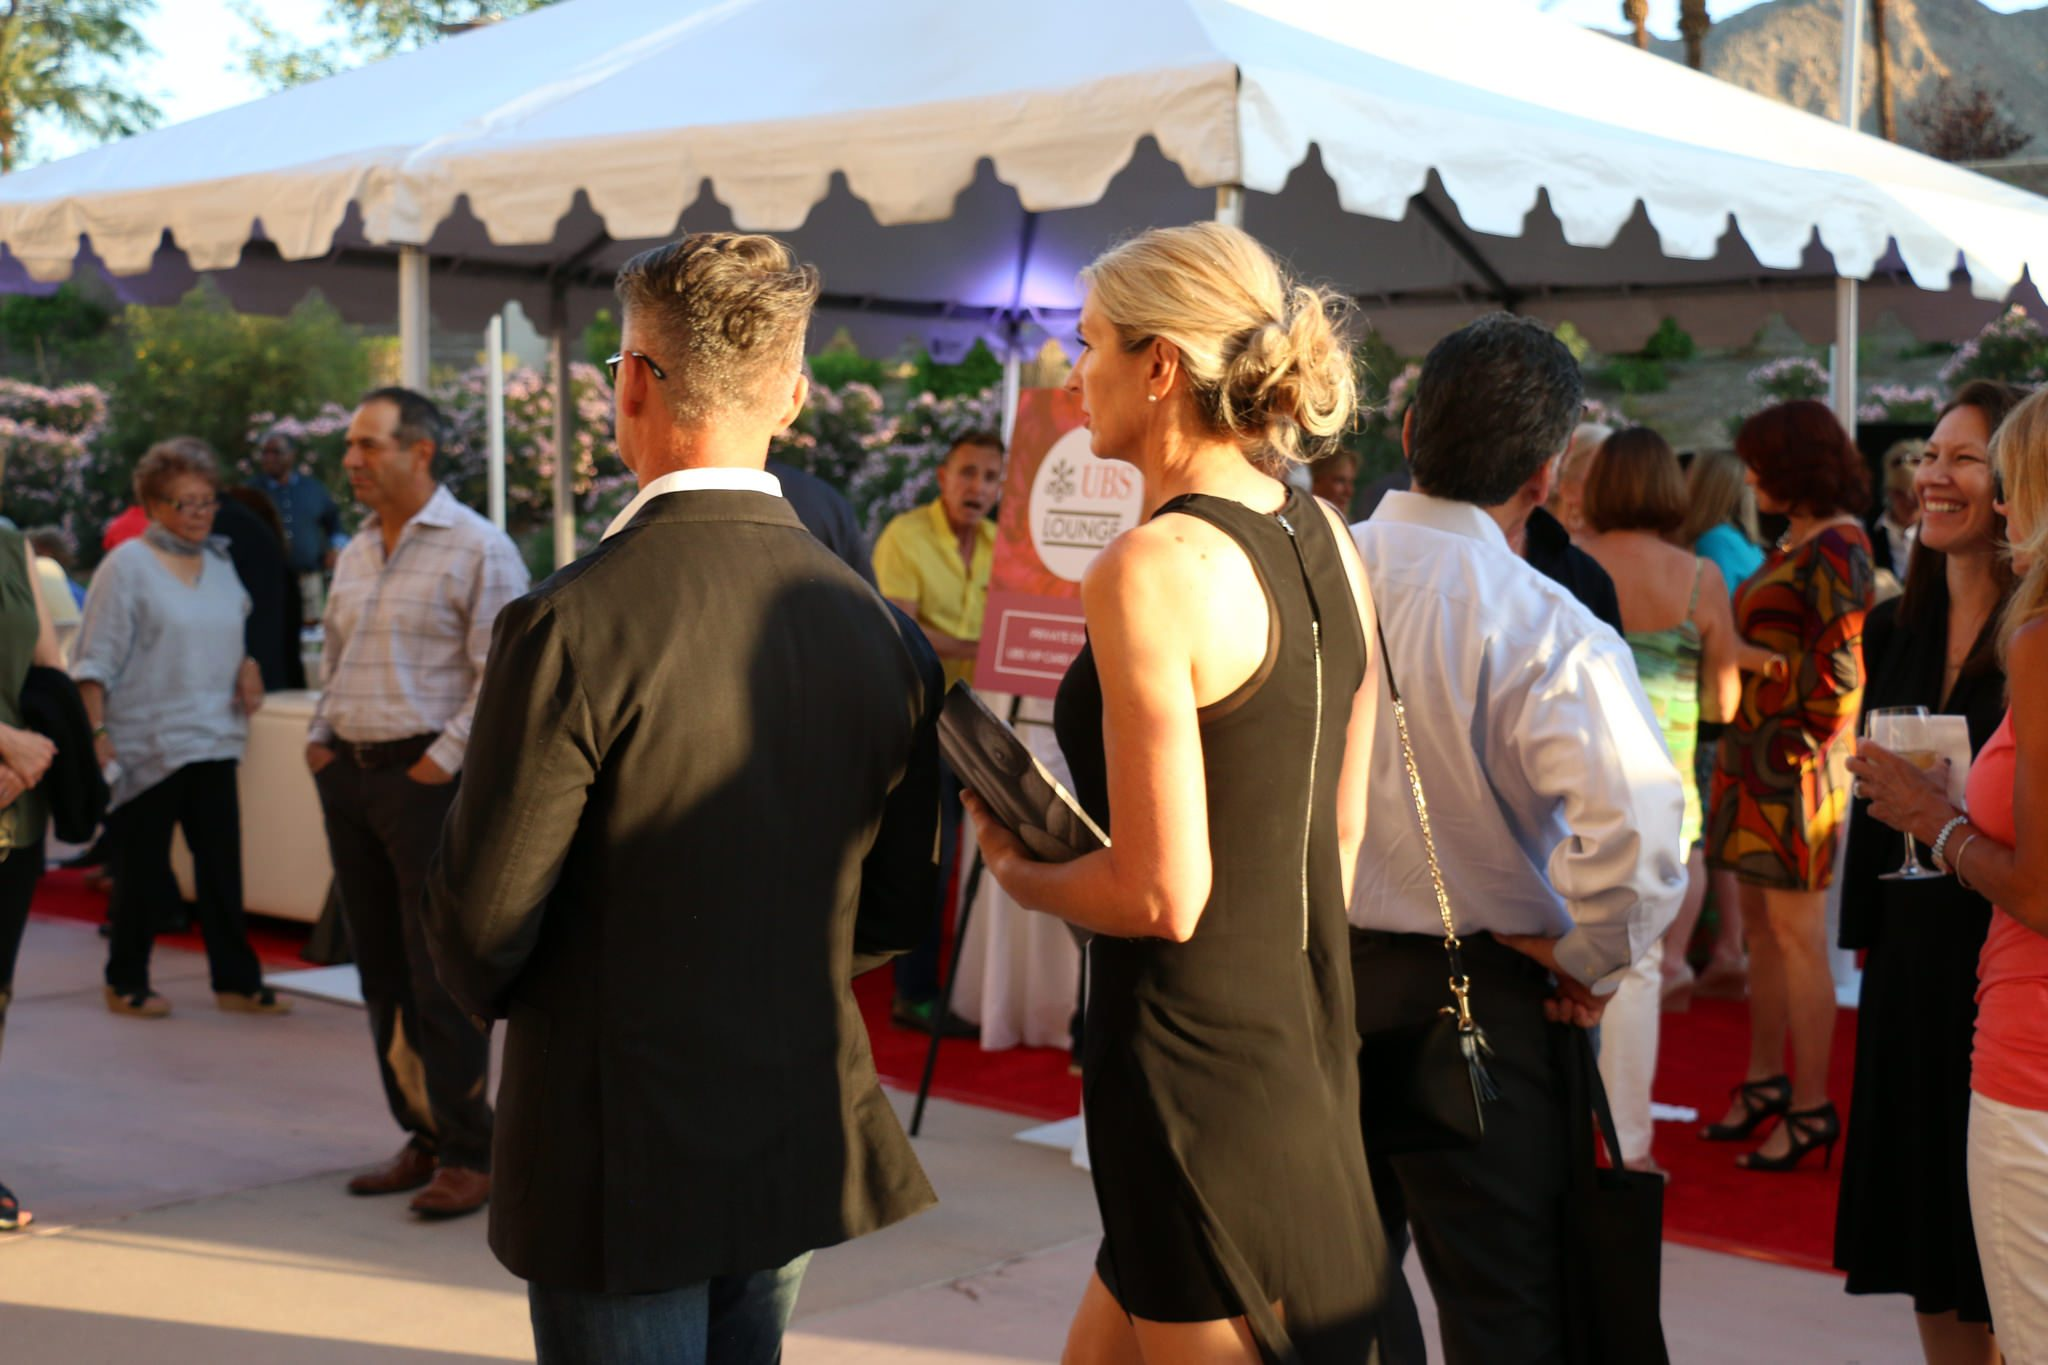 Attendees enjoy the warm evening weather as they make their way into the show.